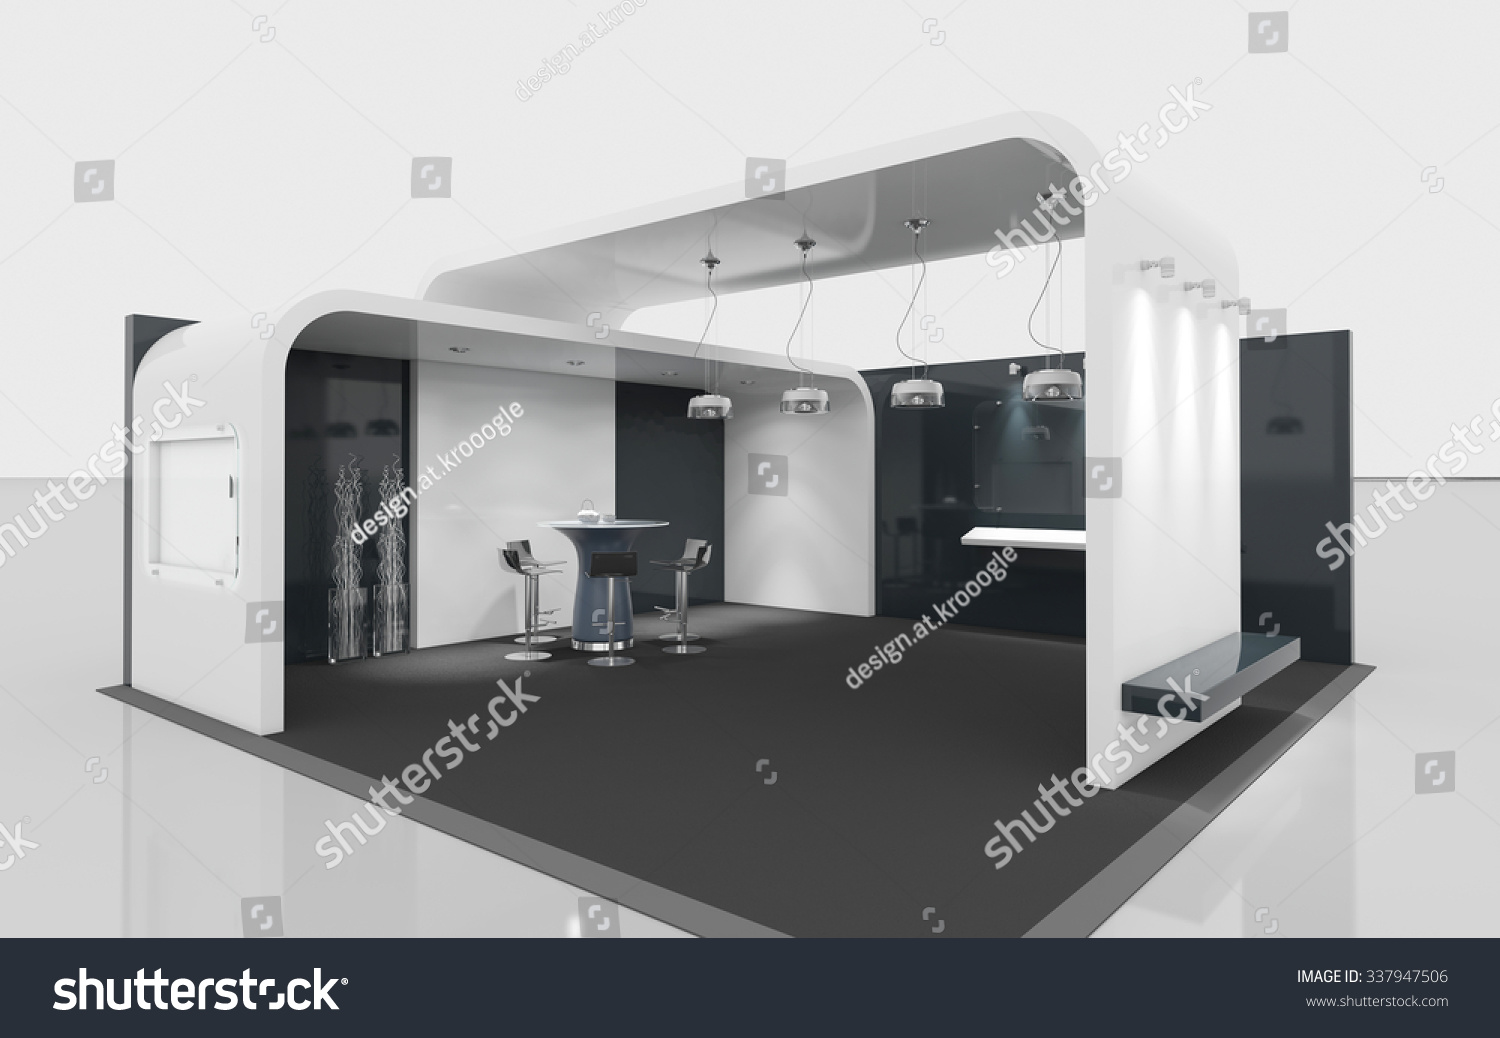 Simple Exhibition Stand Out : Black and white exhibition booth d rendering stock photo